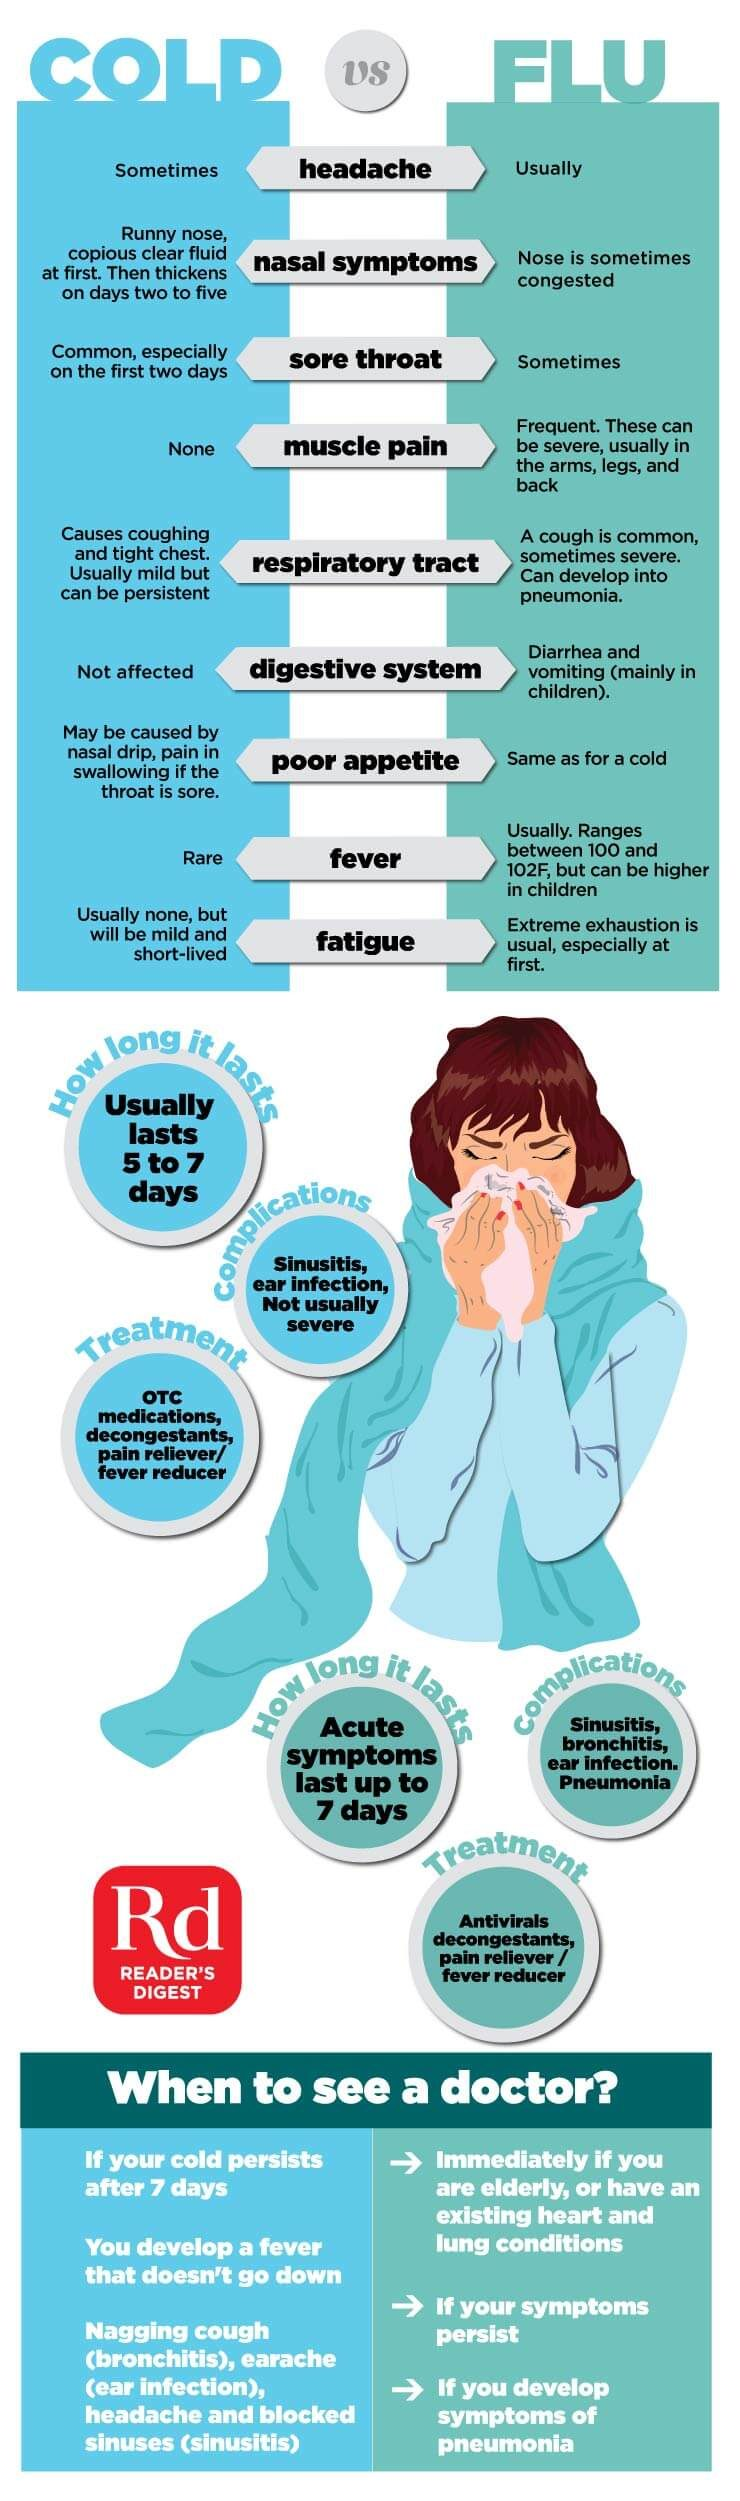 Cold vs. Flu: Do You Know the Difference? | The Healthy